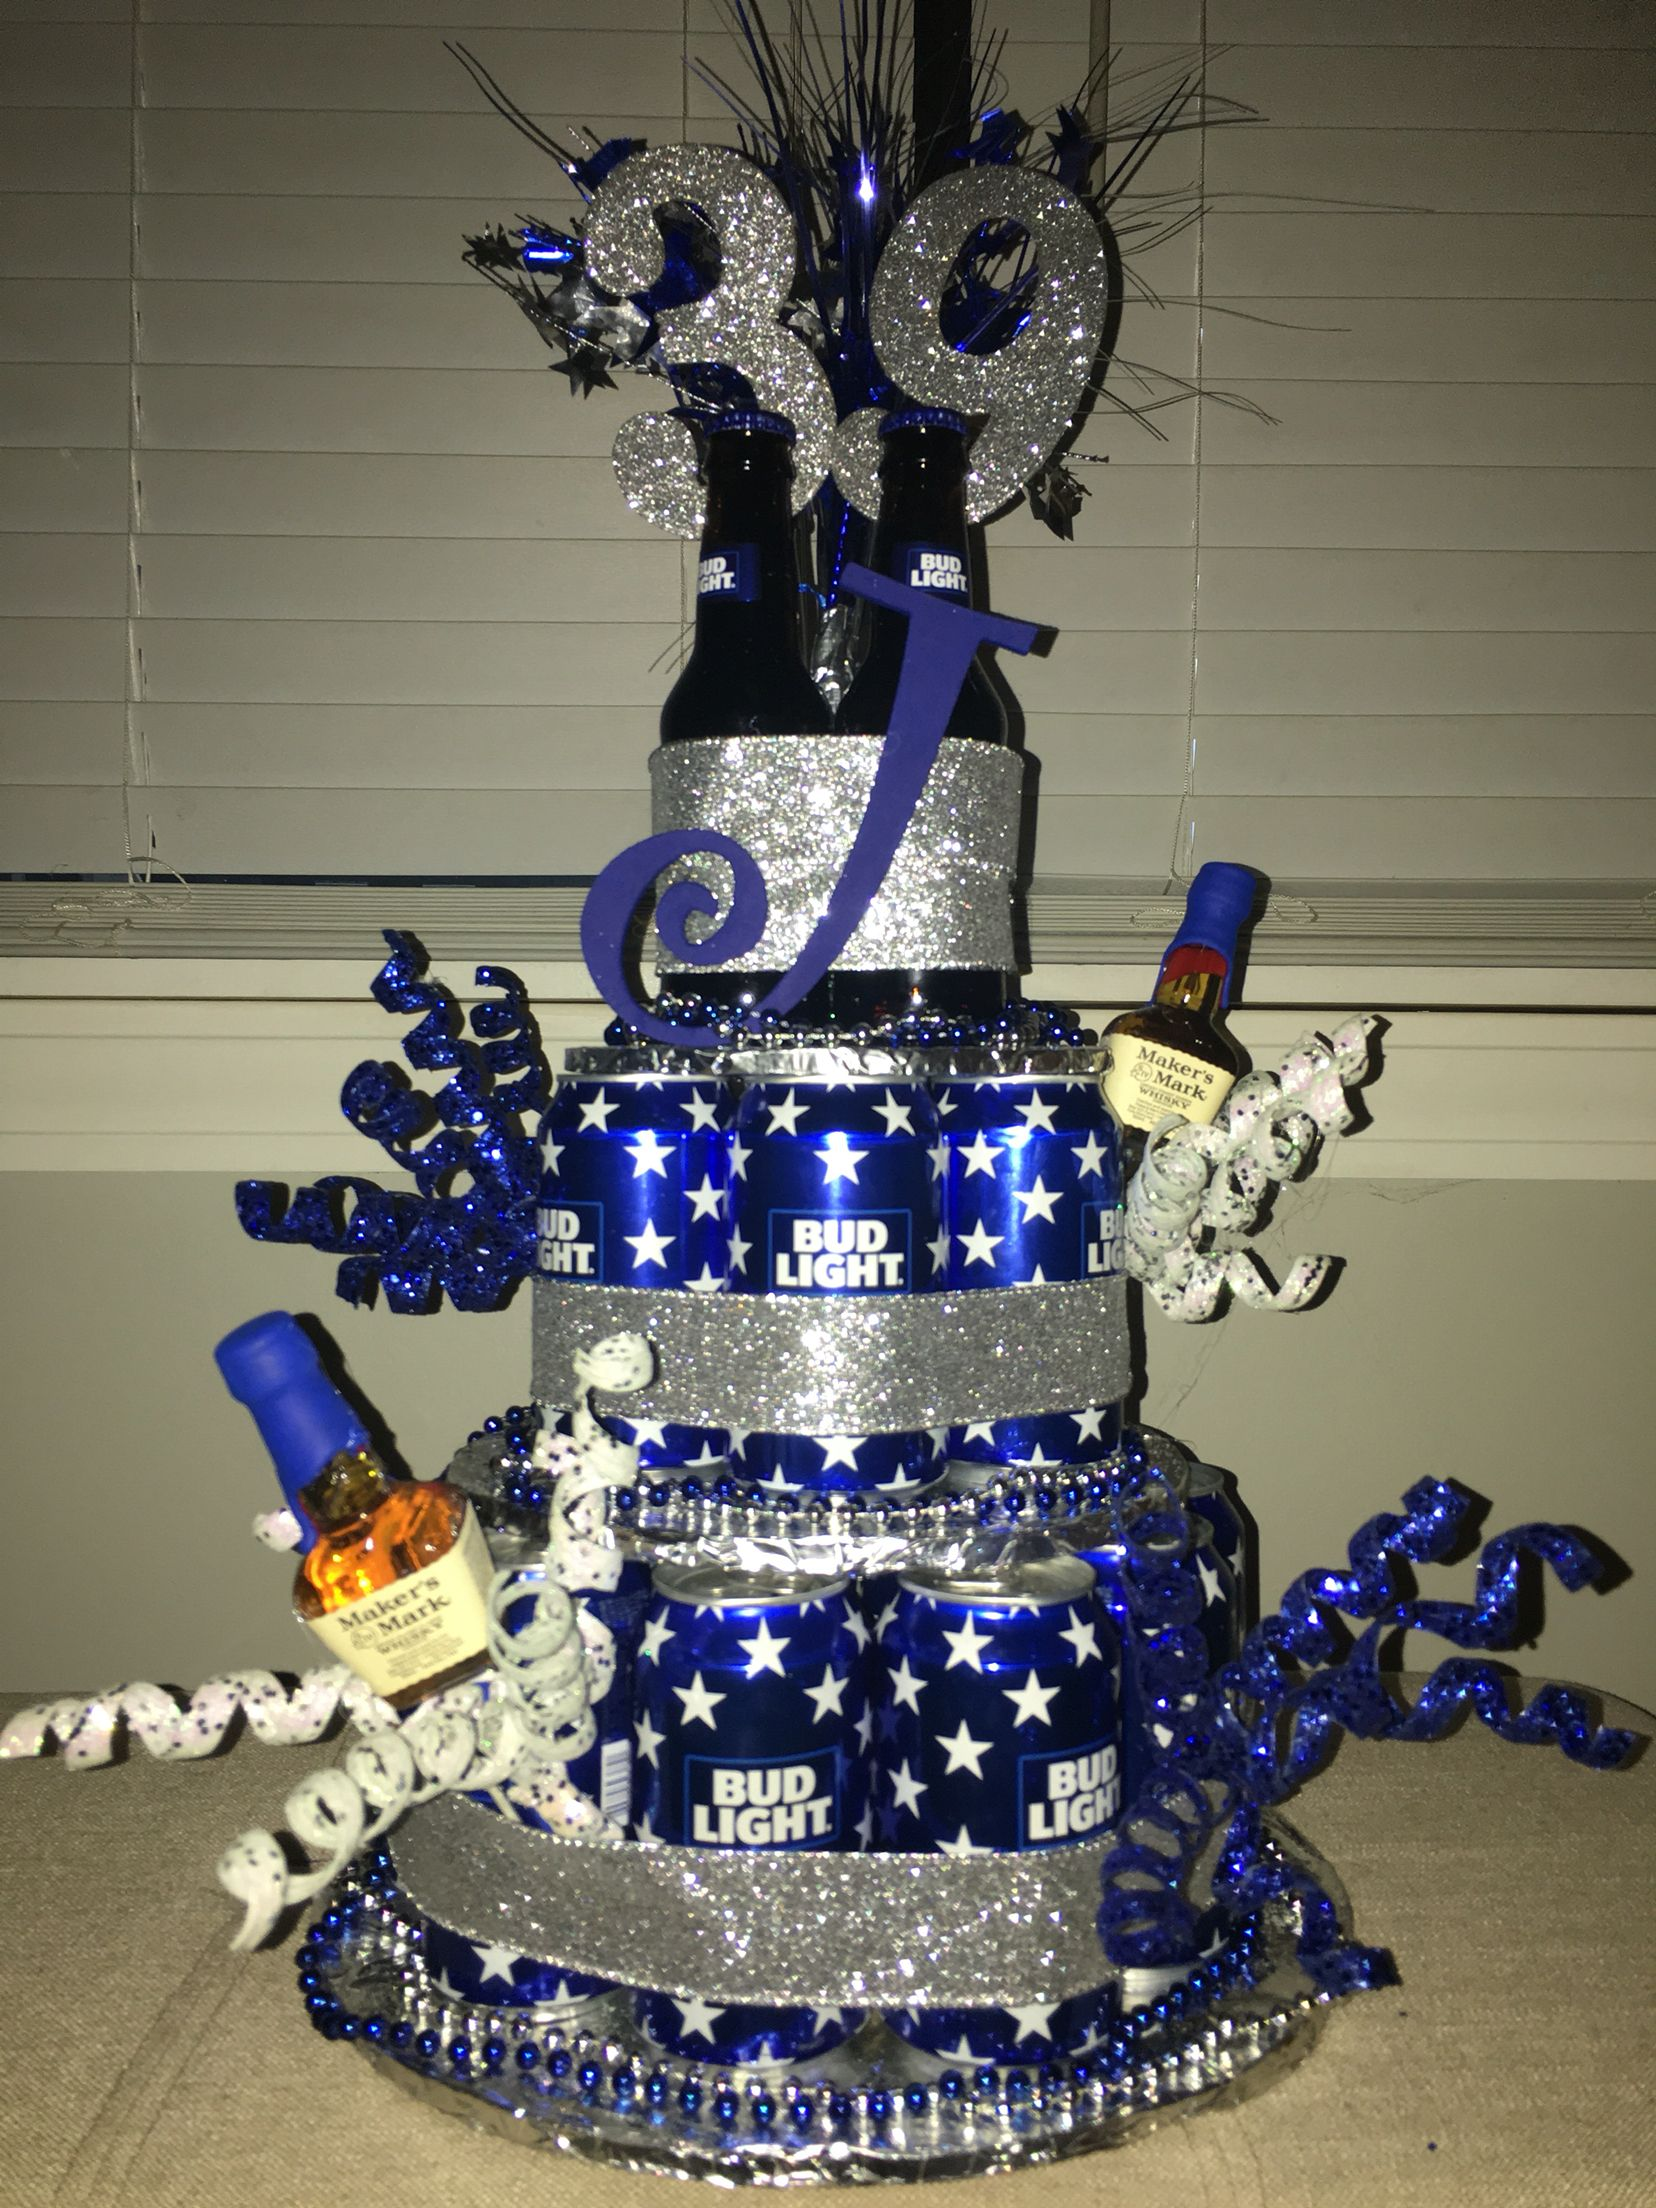 Bud Light Beer Cake Retirement Cake Budlight Beer Cake Beer